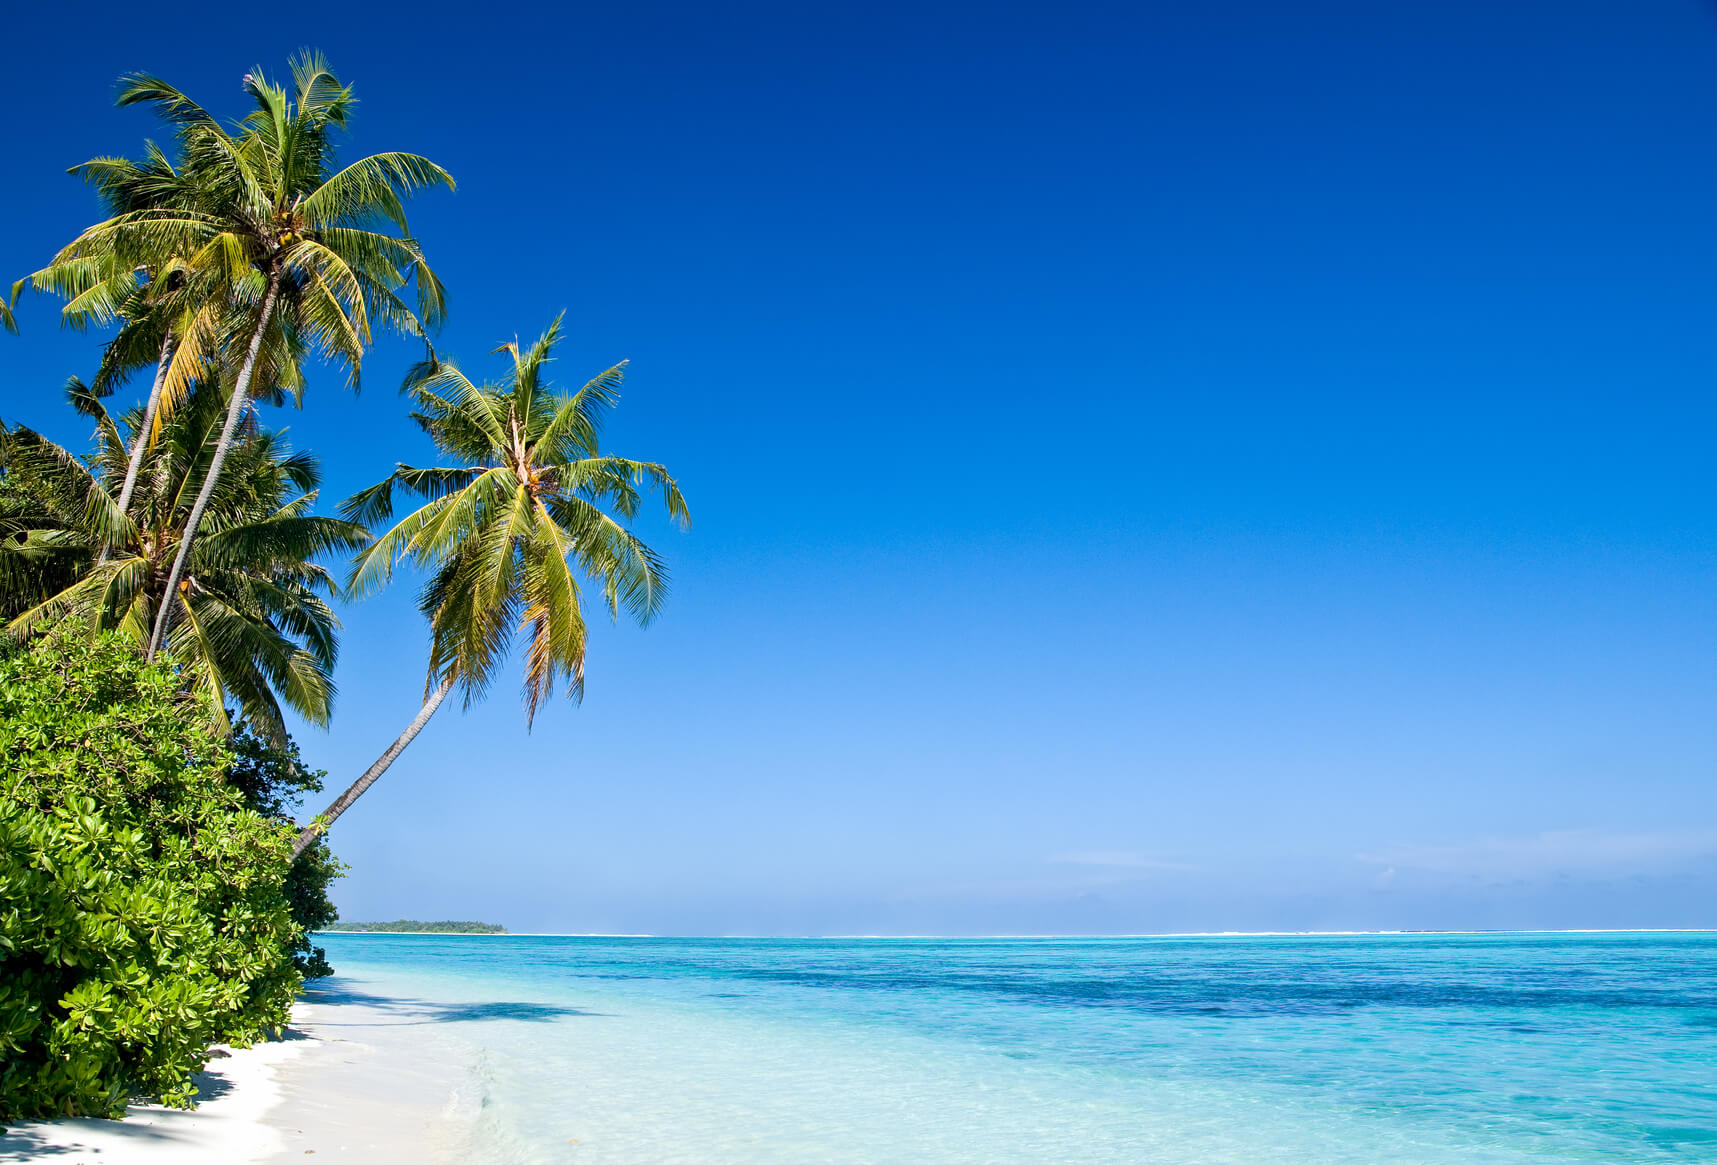 **EXPIRED** Toronto or Montreal, Canada to the Bahamas from only $200 CAD roundtrip